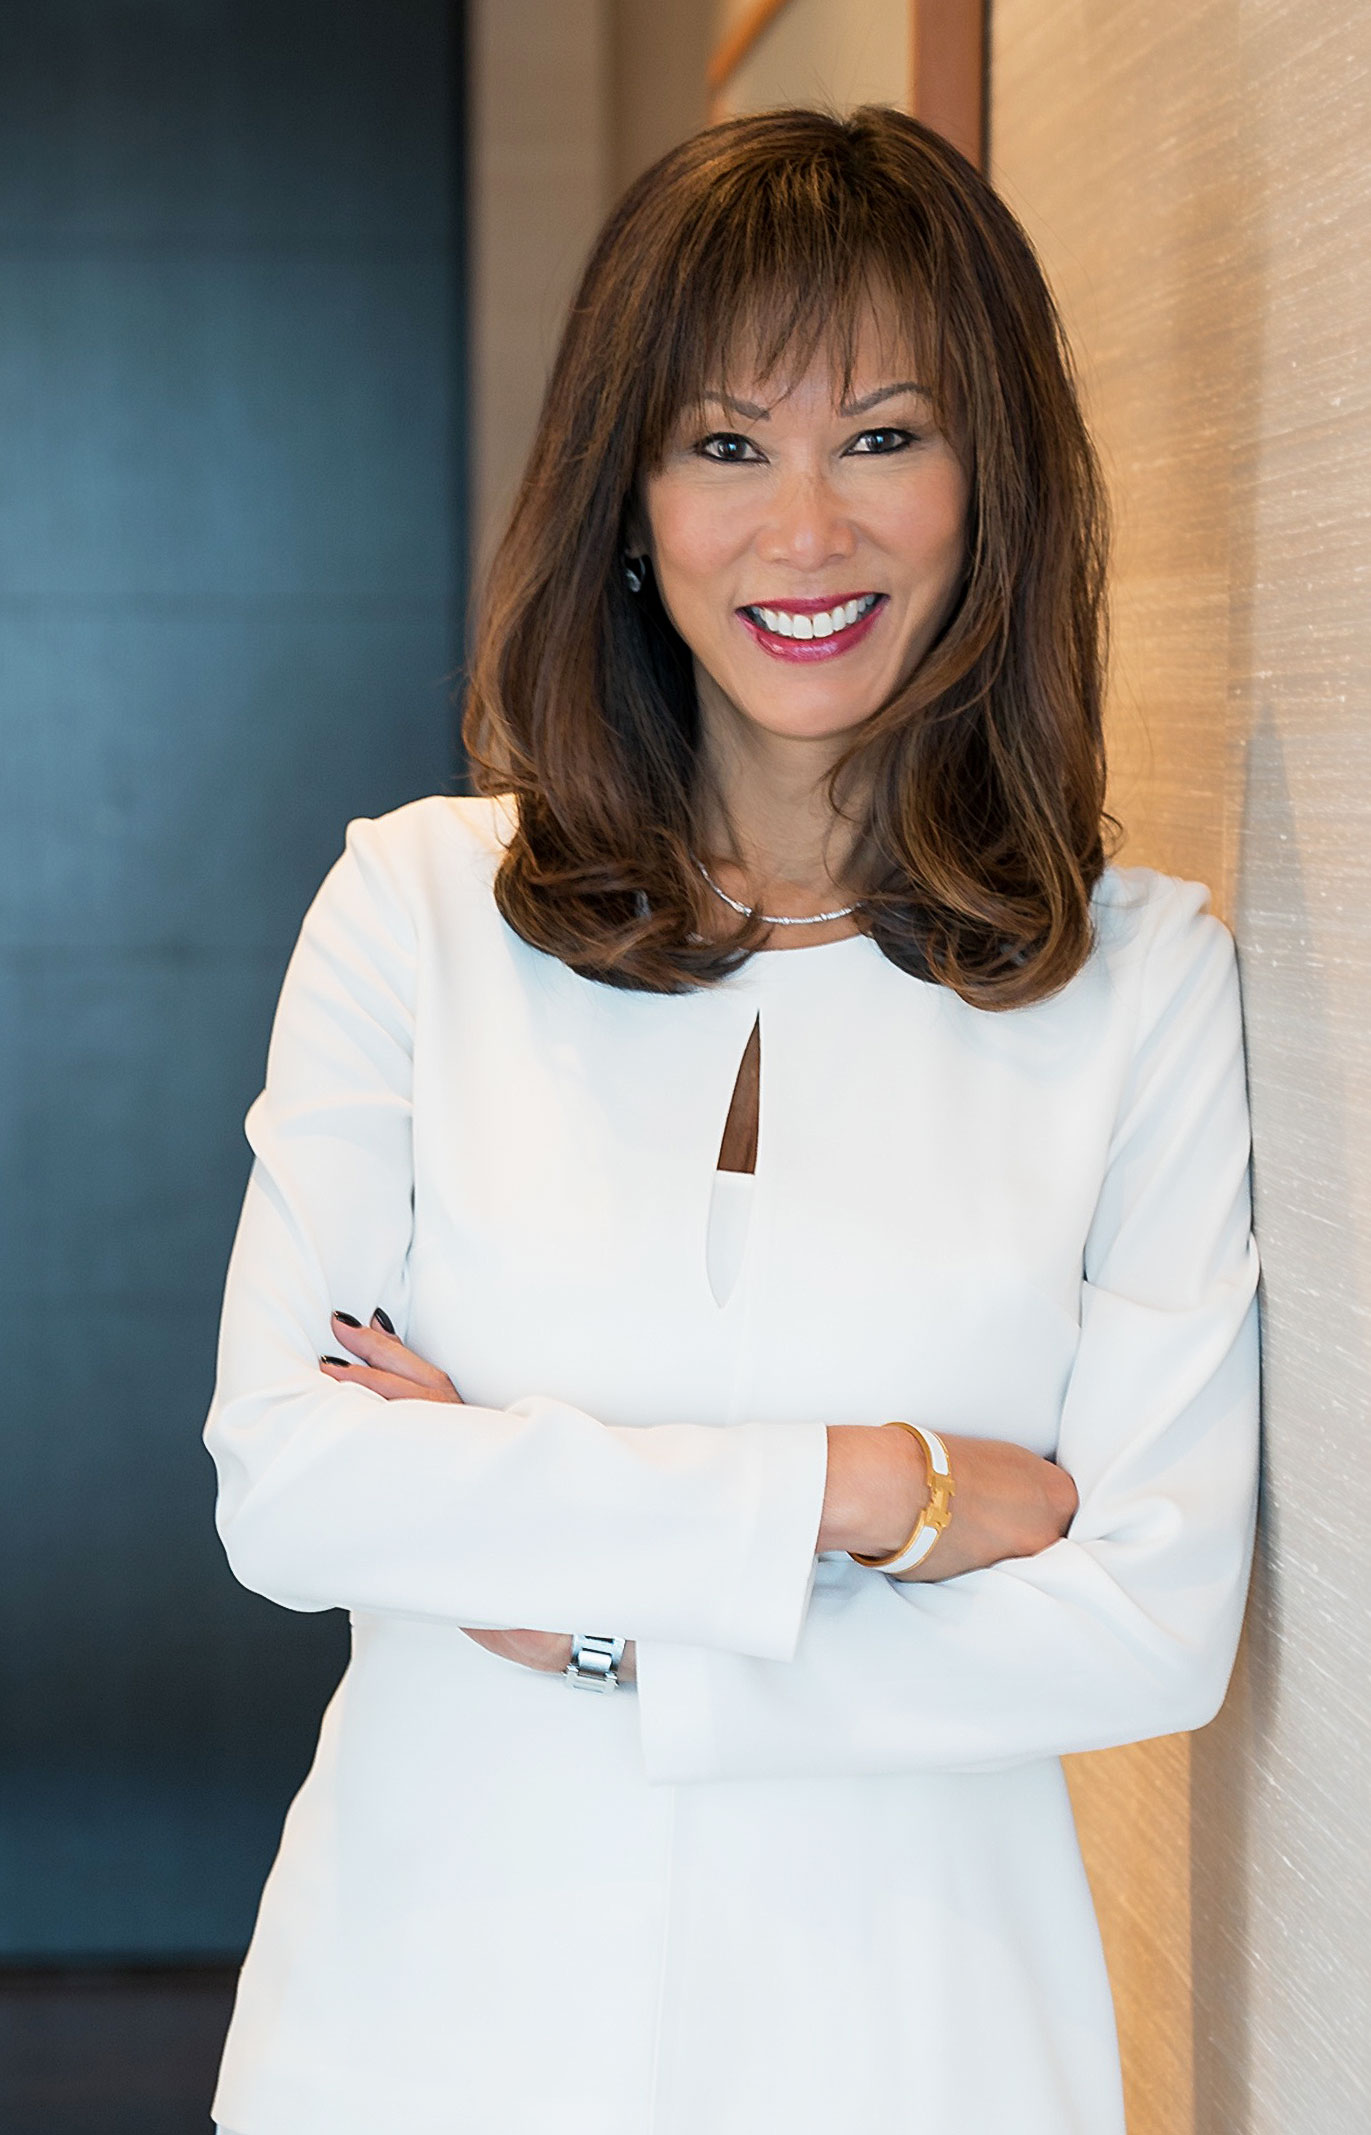 Jocelyn Kung, Founder of The Kung Group